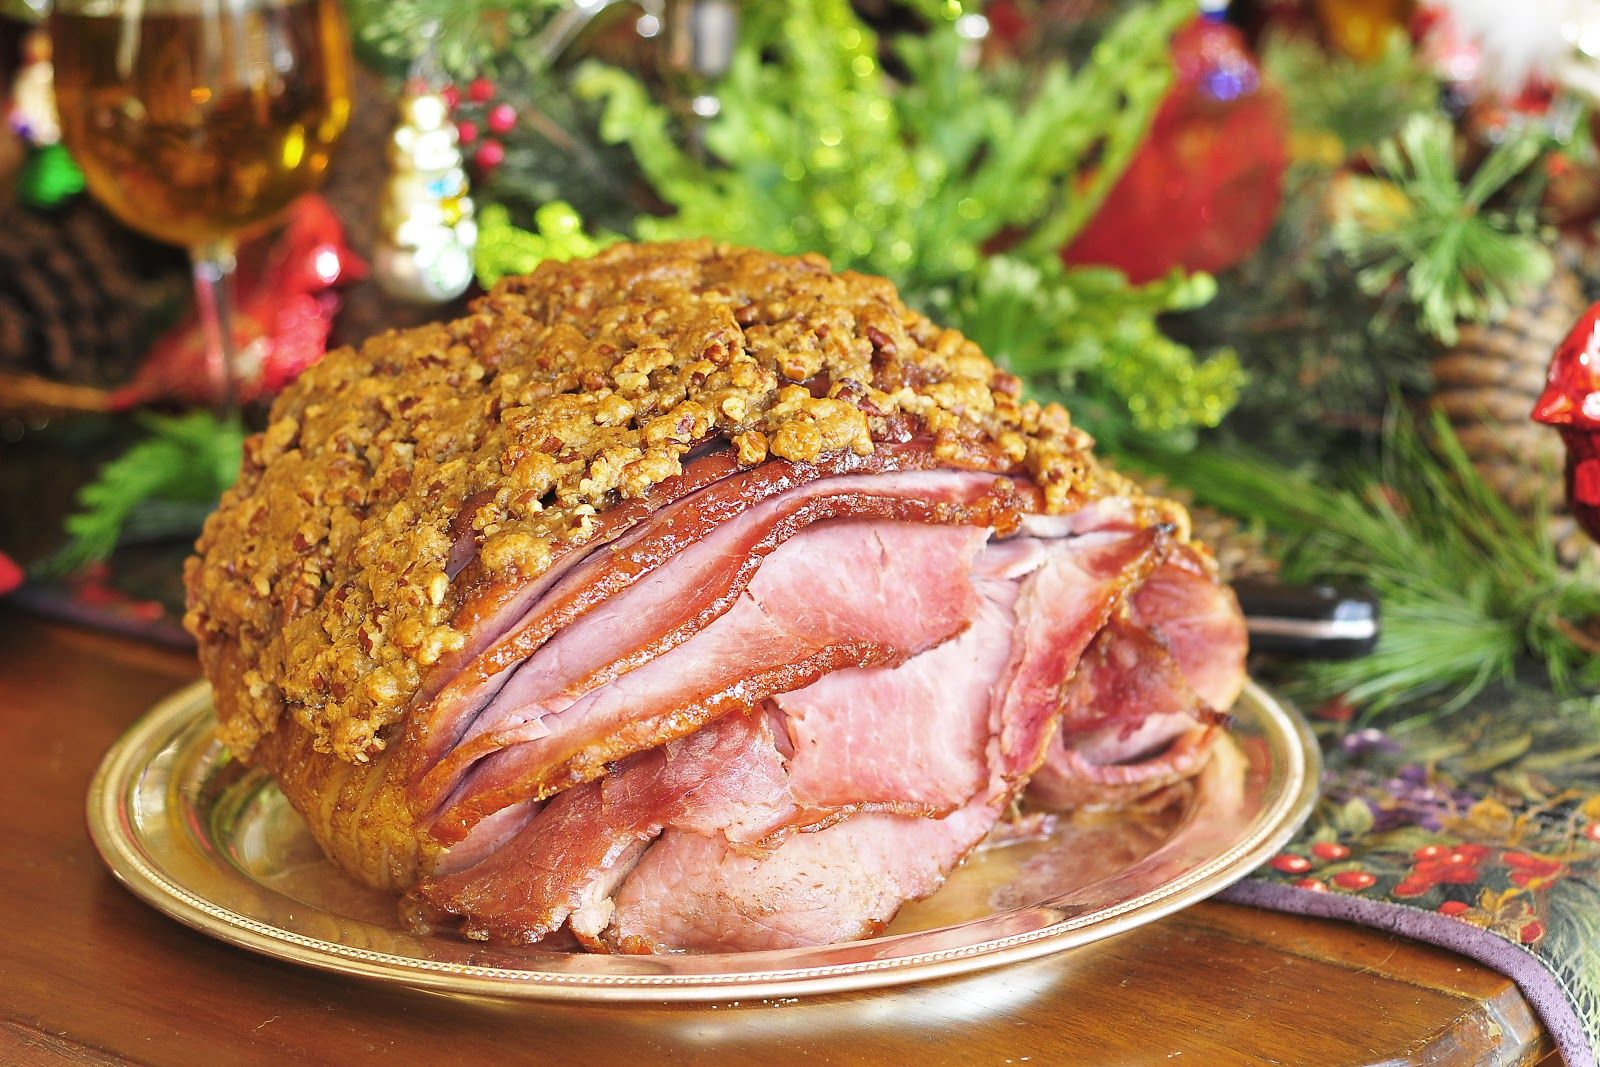 Simply Gourmet: 240. Hot Buttered Rum and Pecan Encrusted Christmas Ham